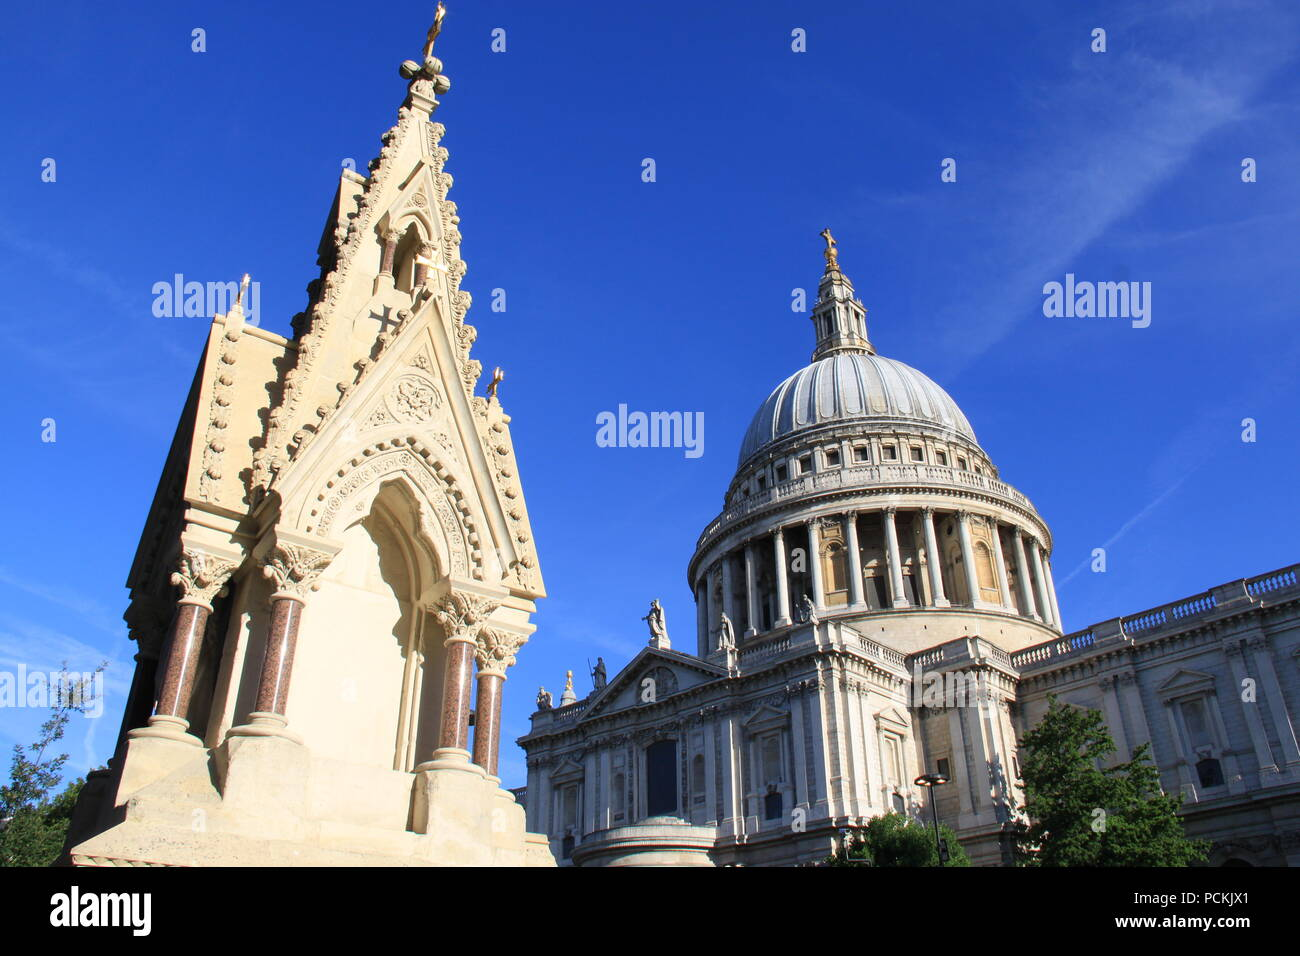 Iconic St Paul's Cathedral on Ludgate Hill, London (designed by the highly acclaimed English architect Sir Christopher Wren) UK, PETER GRANT Stock Photo